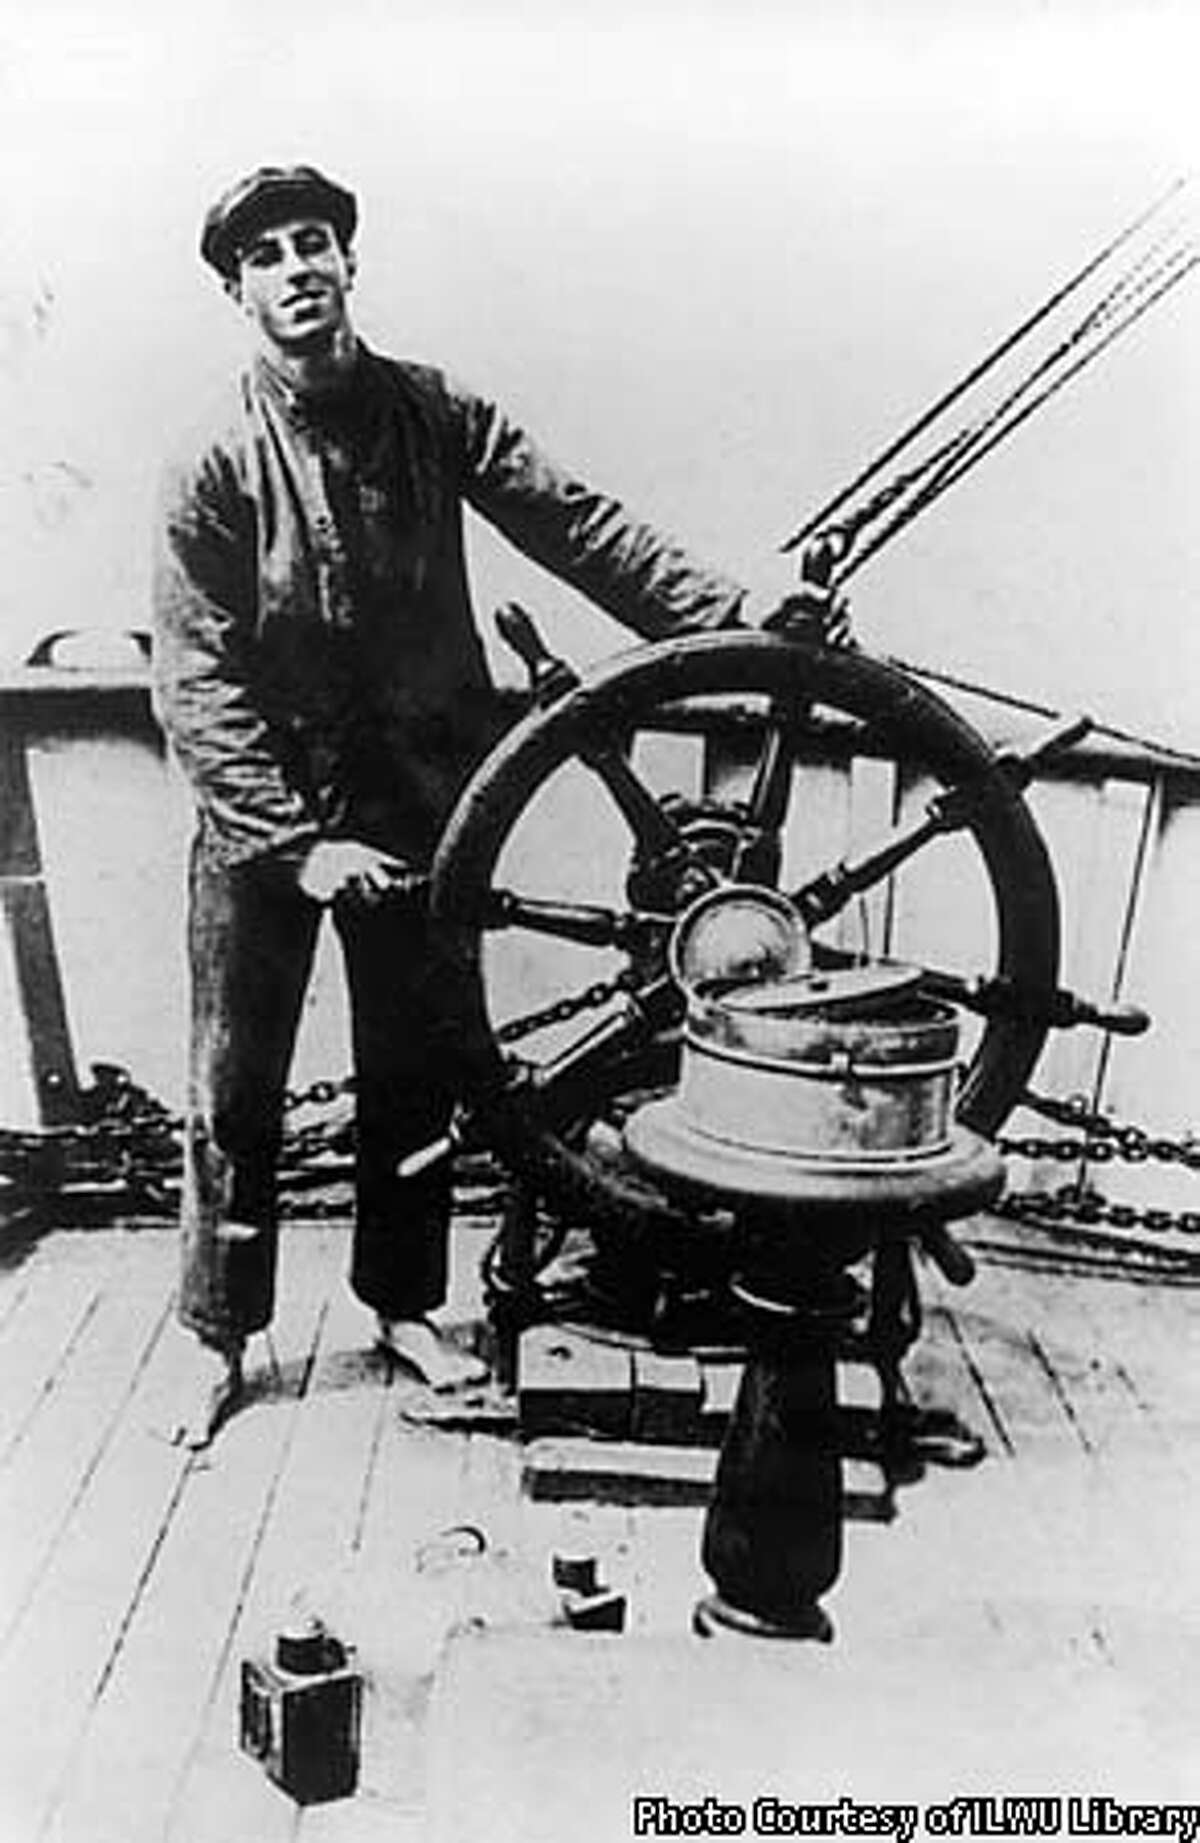 Harry Bridges at the helm of the Santa Ysabel when he first sailed into San Francisco in 1920 as a member of the Australian Seaman's Union. MANDATORY CREDIT: BRIDGES FAMILY PHOTO, COURTESY OF ILWU LIBRARY.